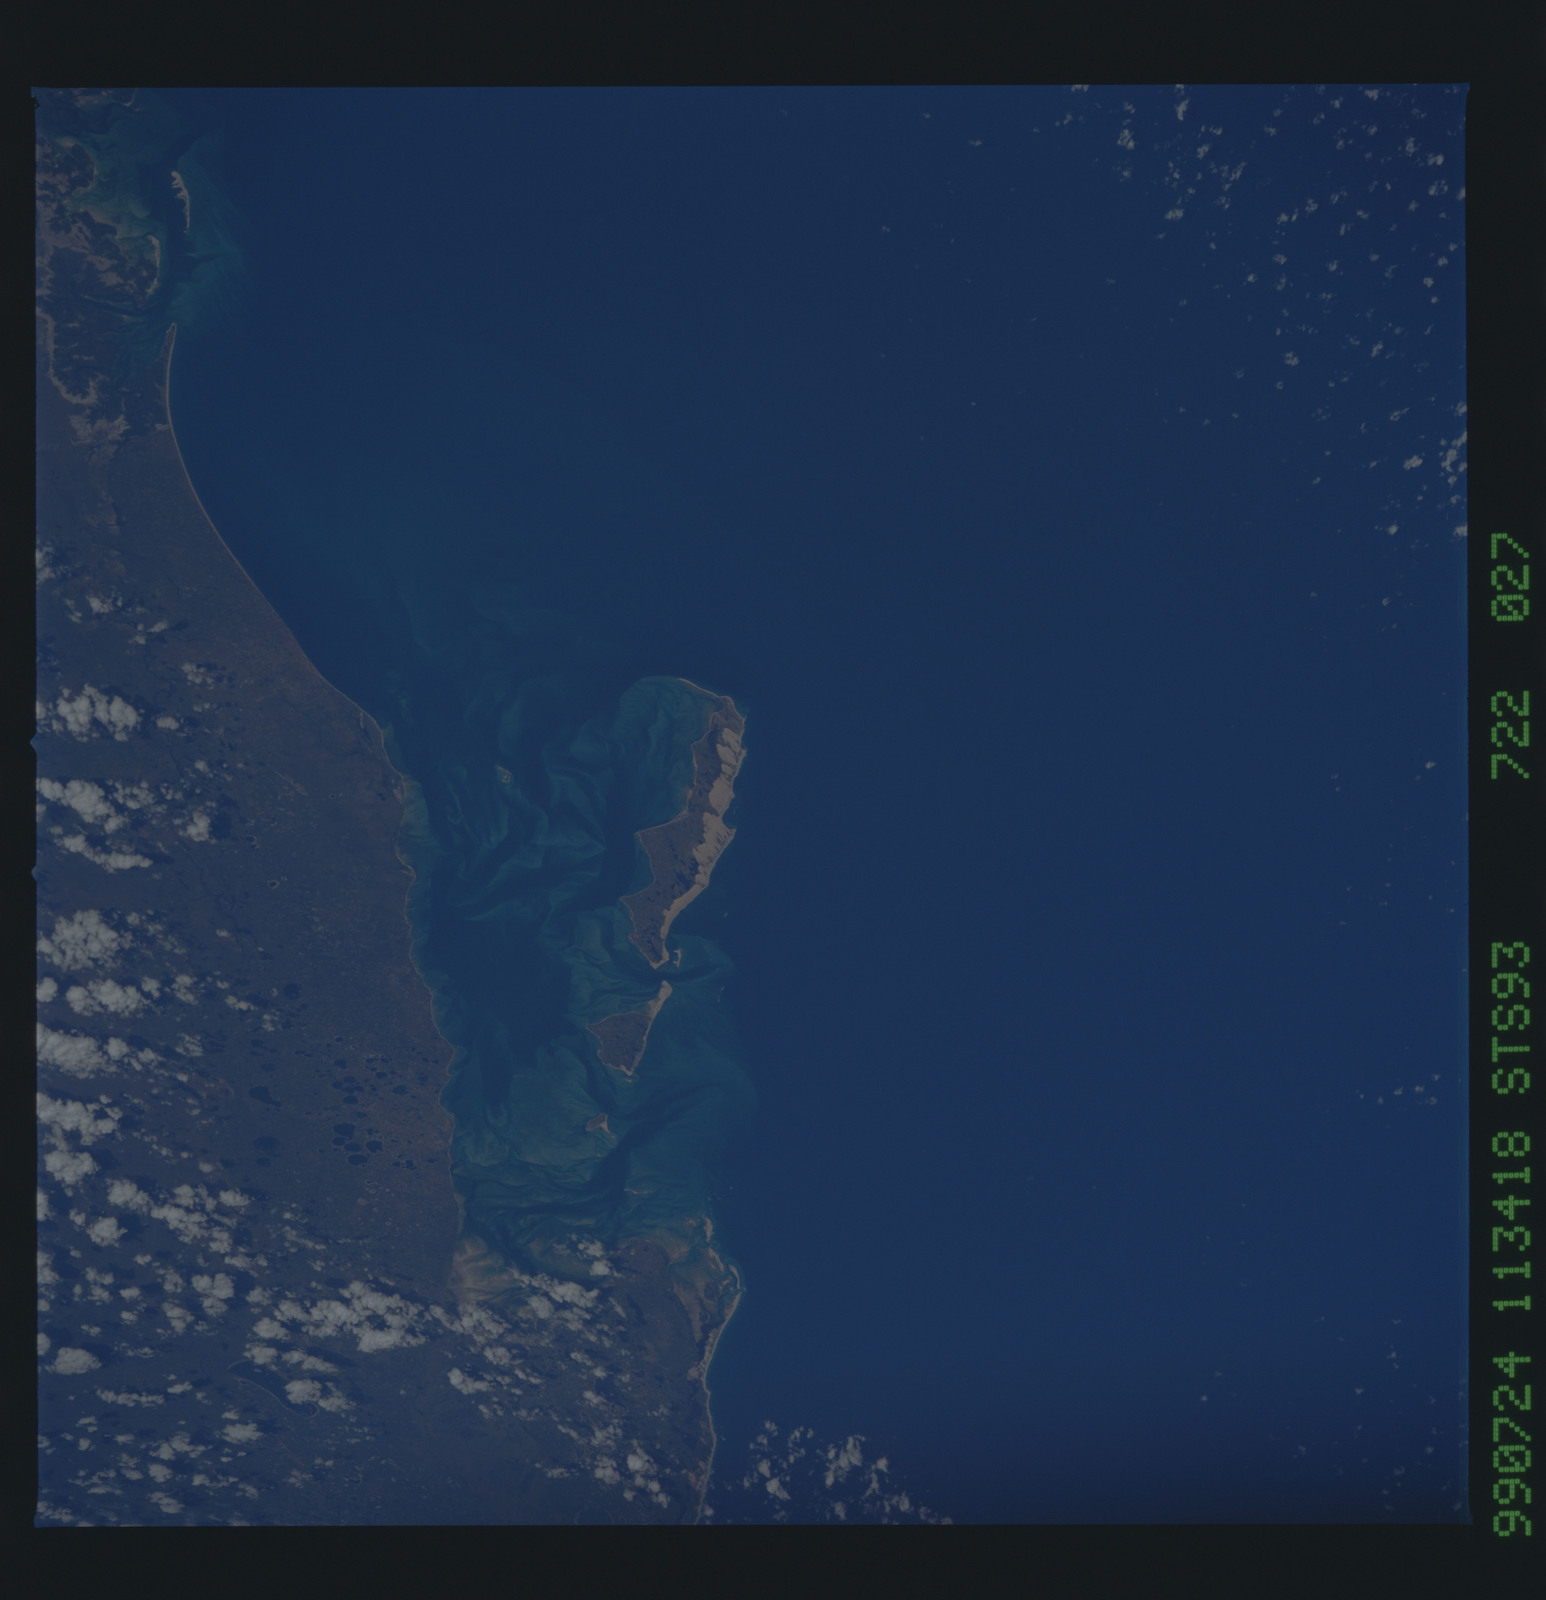 STS093-722-027 - STS-093 - Earth observations taken from Space Shuttle Columbia during STS-93 mission